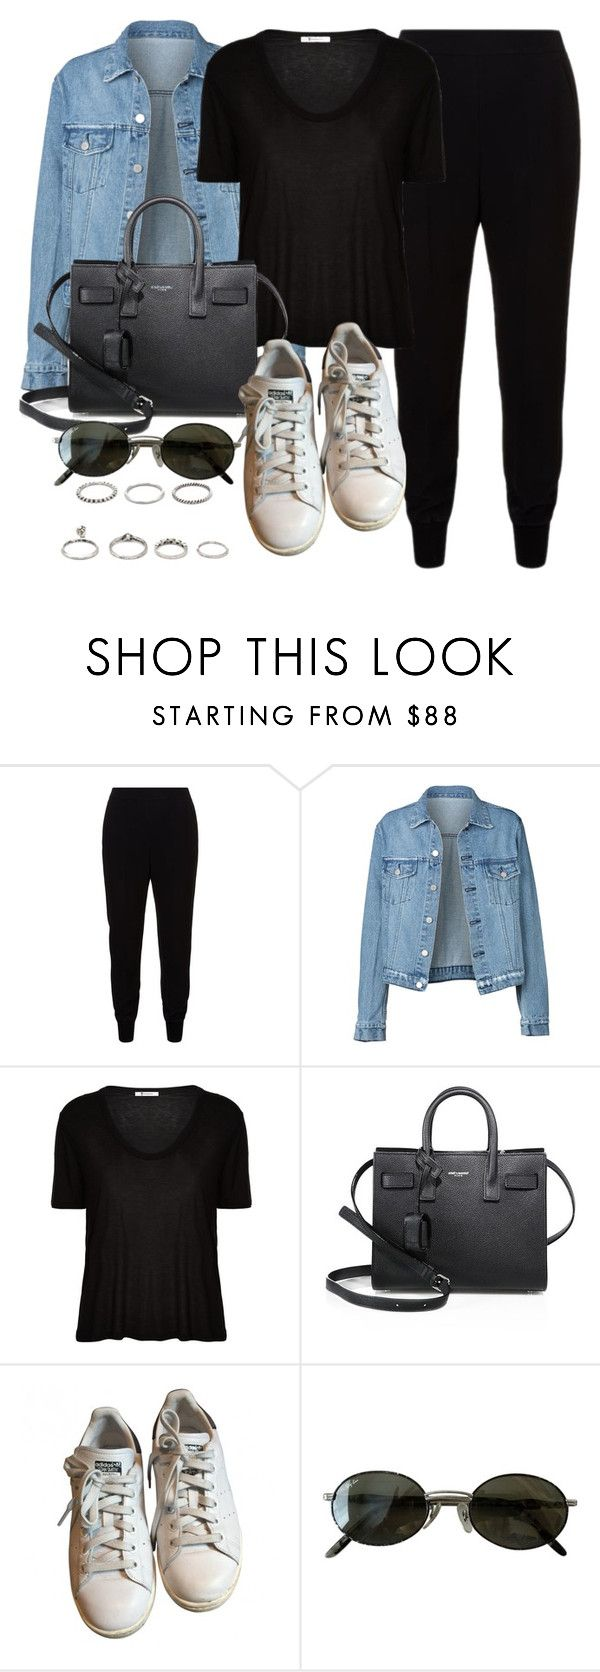 """Style #11527"" by vany-alvarado ❤ liked on Polyvore featuring STELLA McCARTNEY, T By Alexander Wang, Yves Saint Laurent, adidas, Ray-Ban and Forever 21"